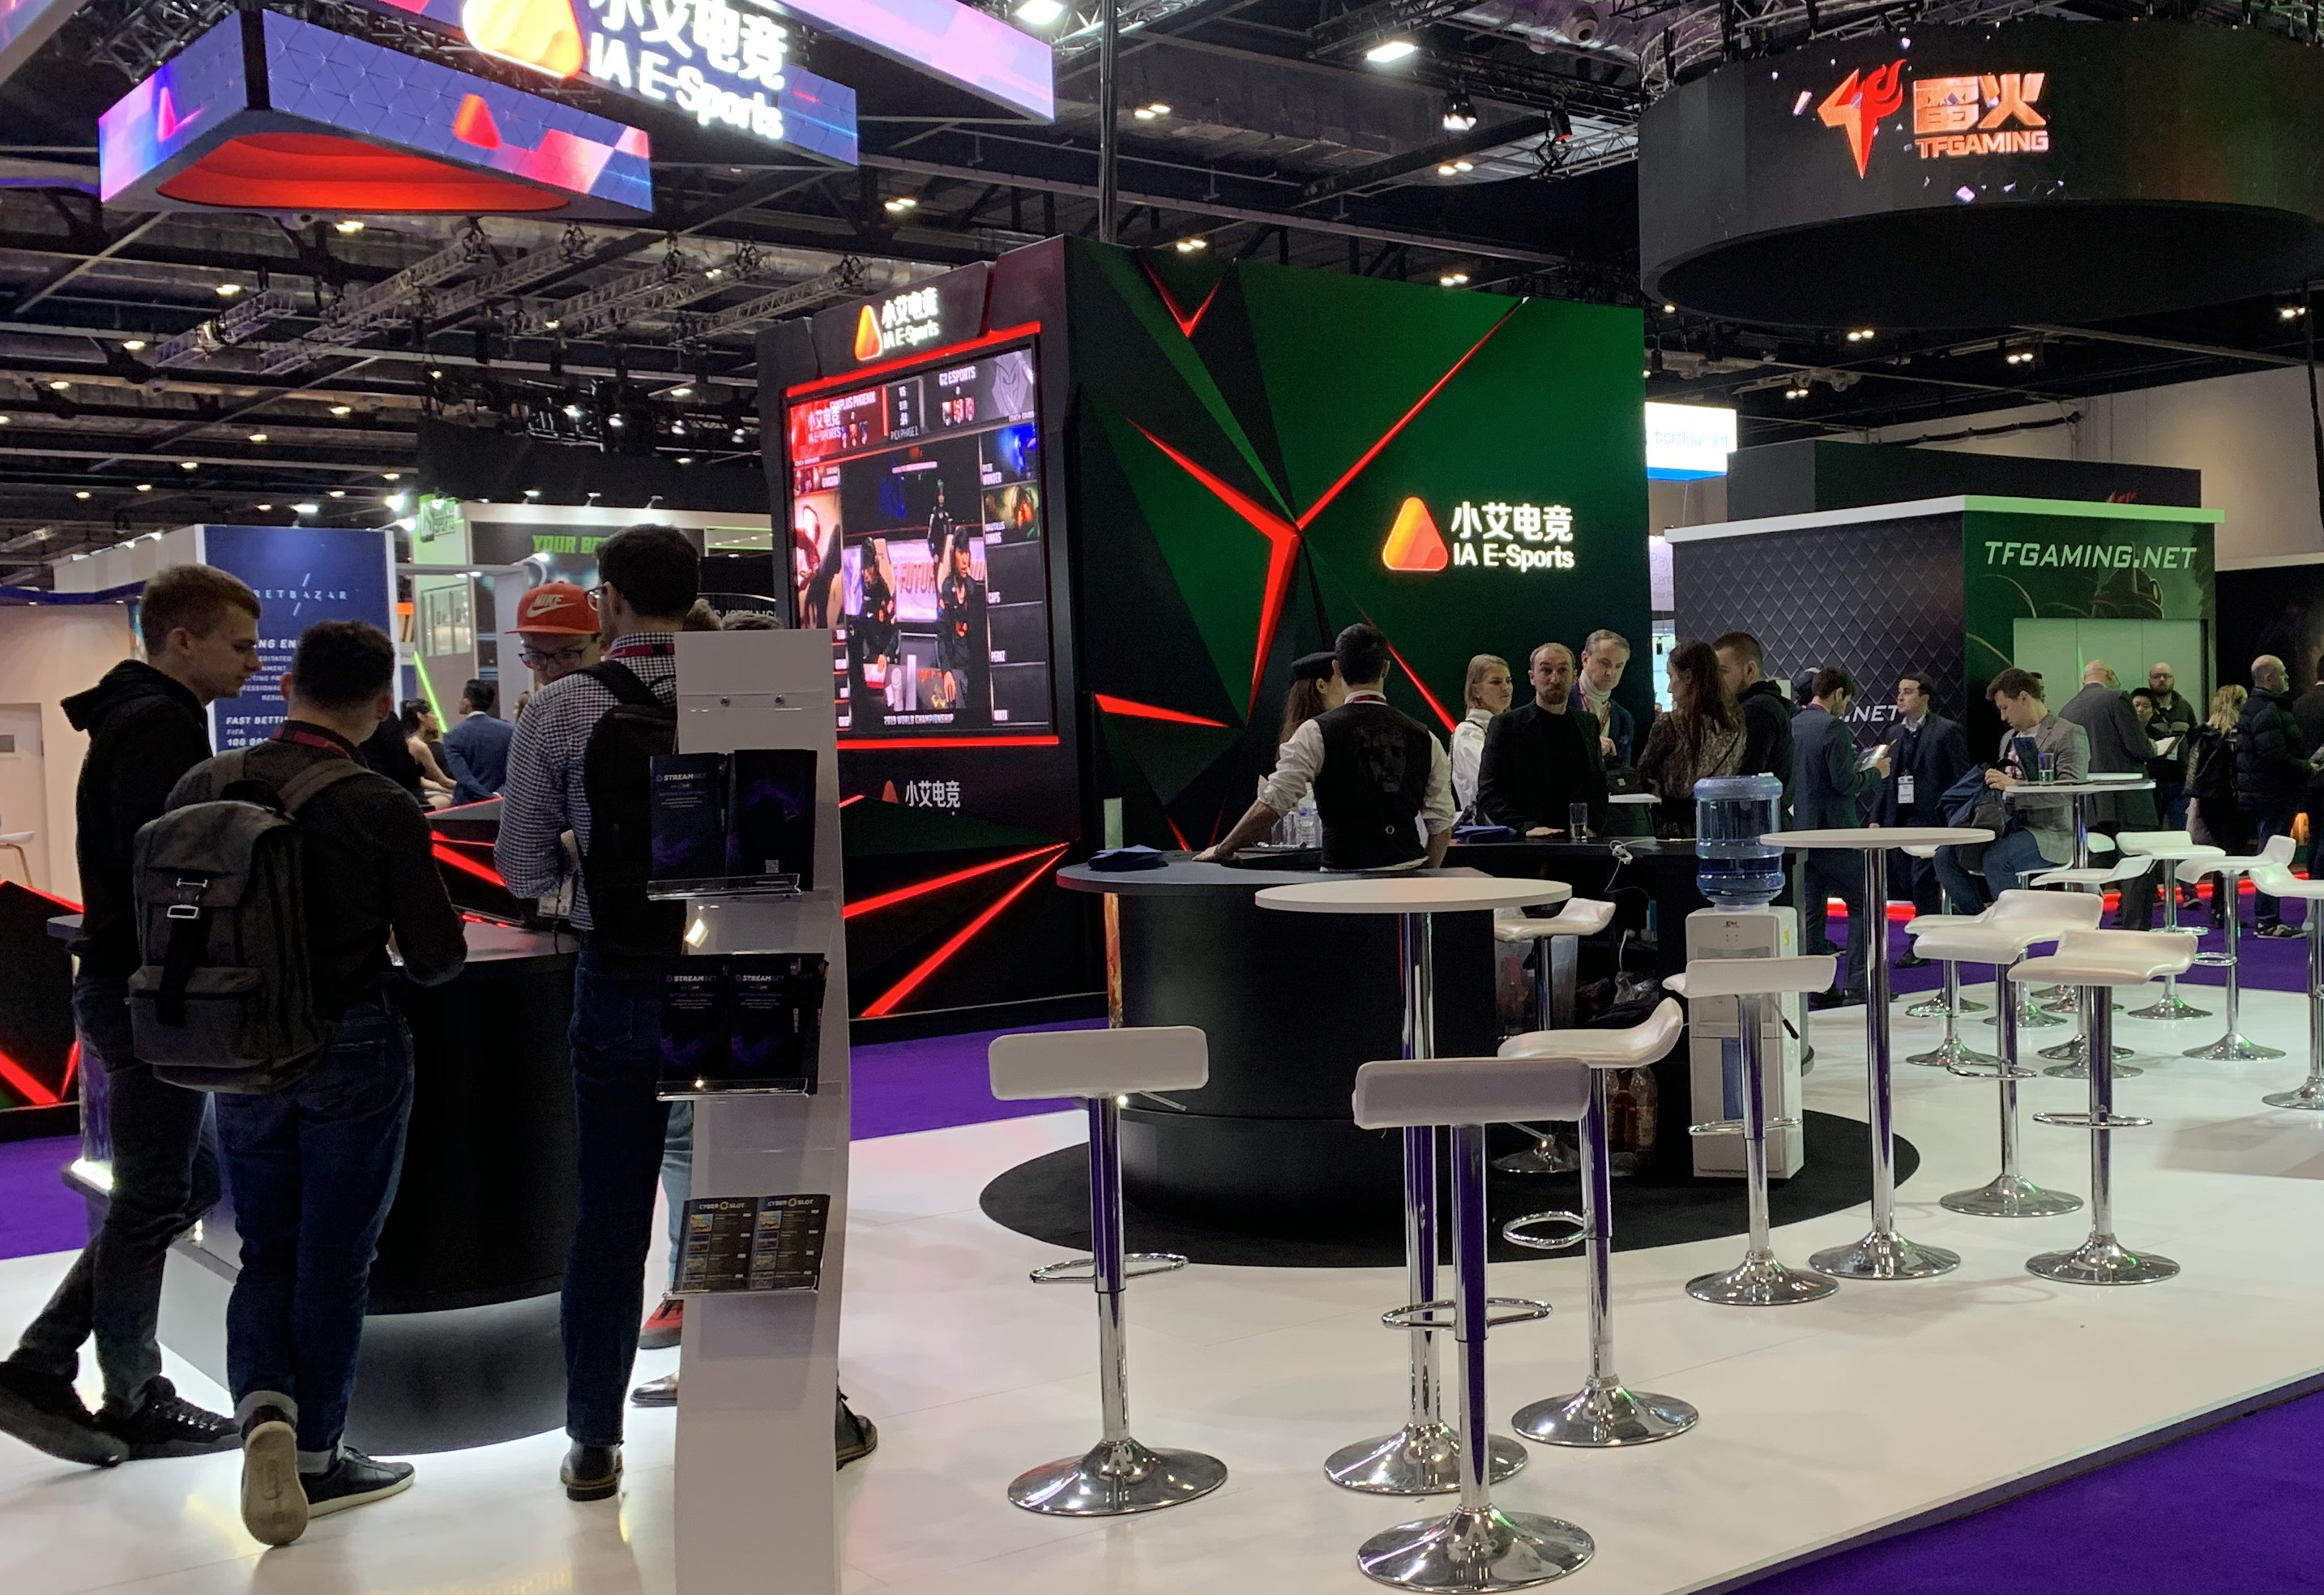 exhibition stand for a gaming company